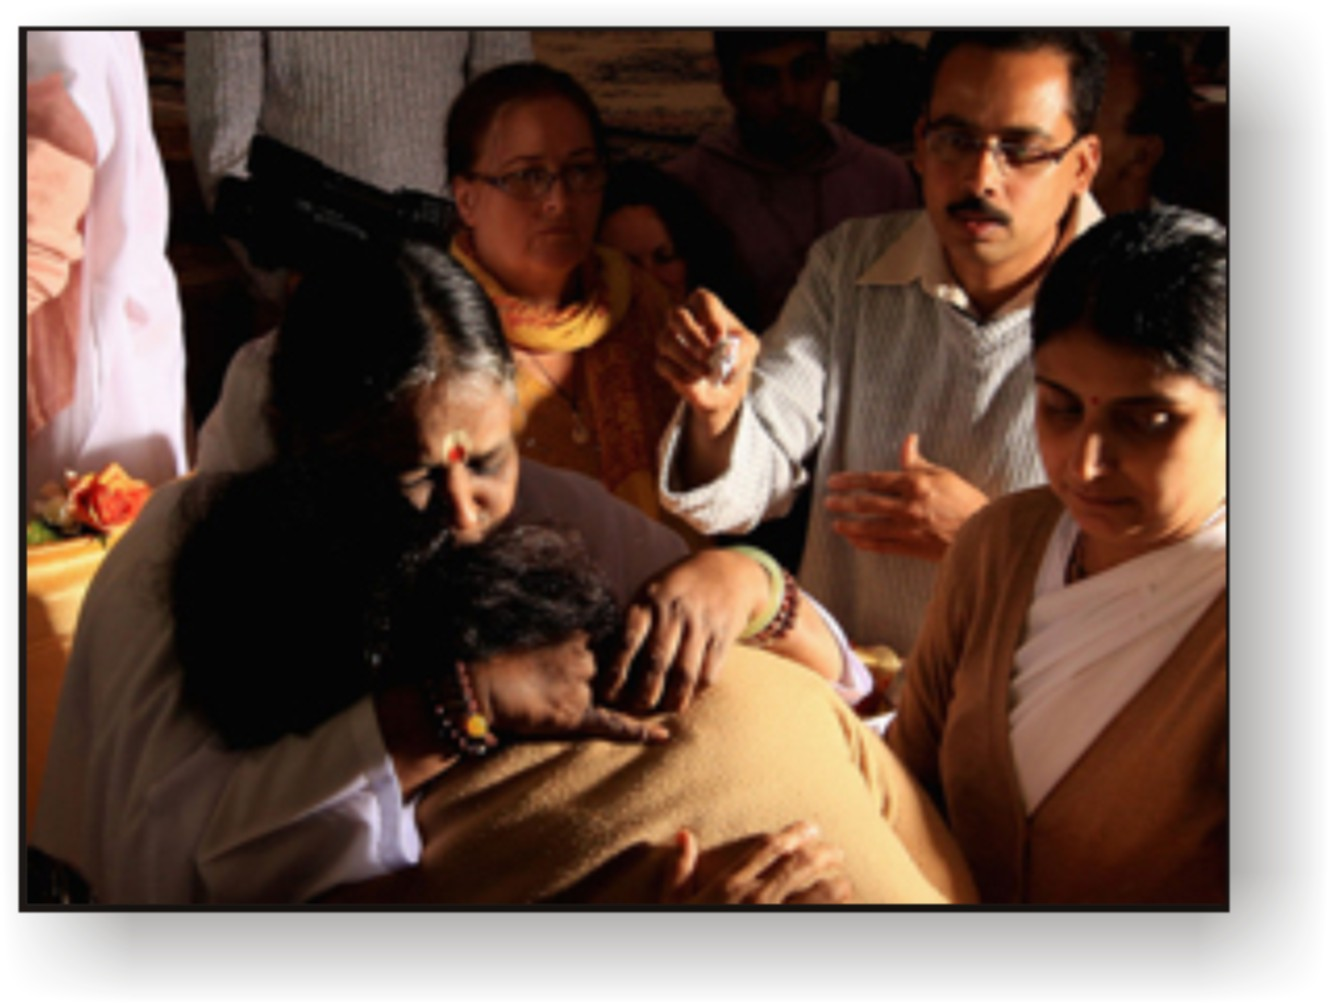 Amma hugging people